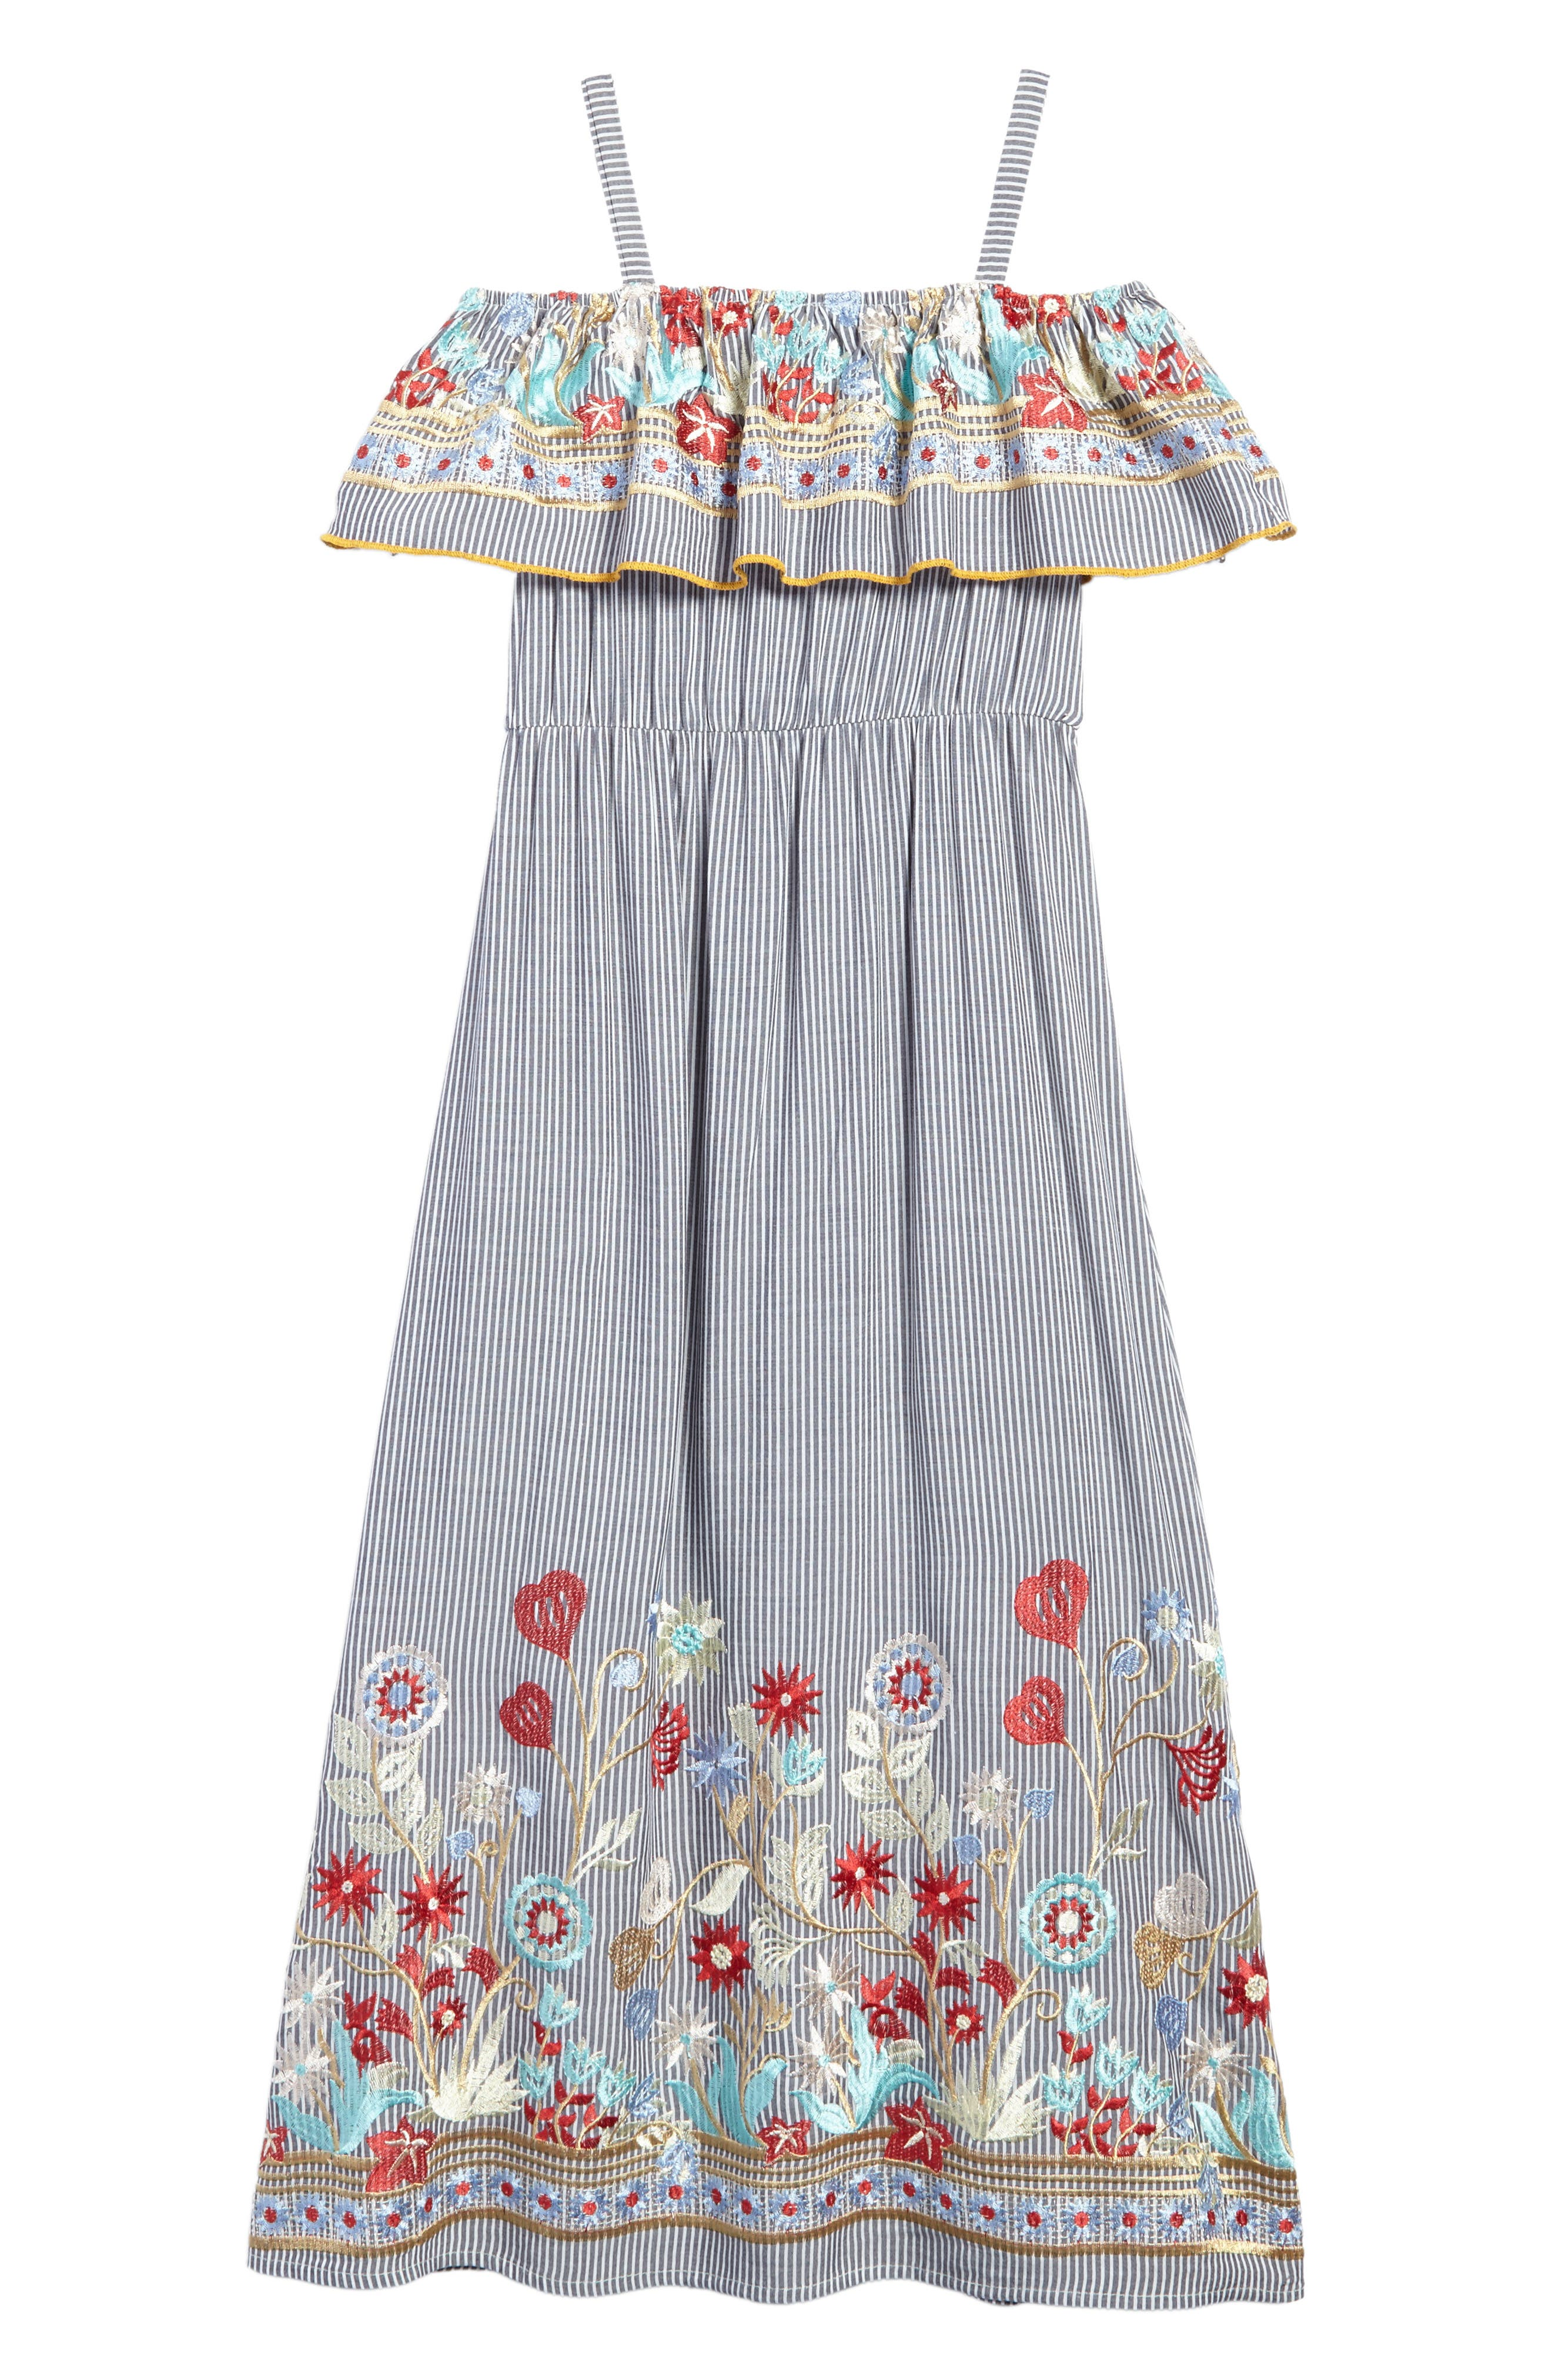 Flower Embroidered Maxi Dress,                             Alternate thumbnail 2, color,                             Gray/ Ivory